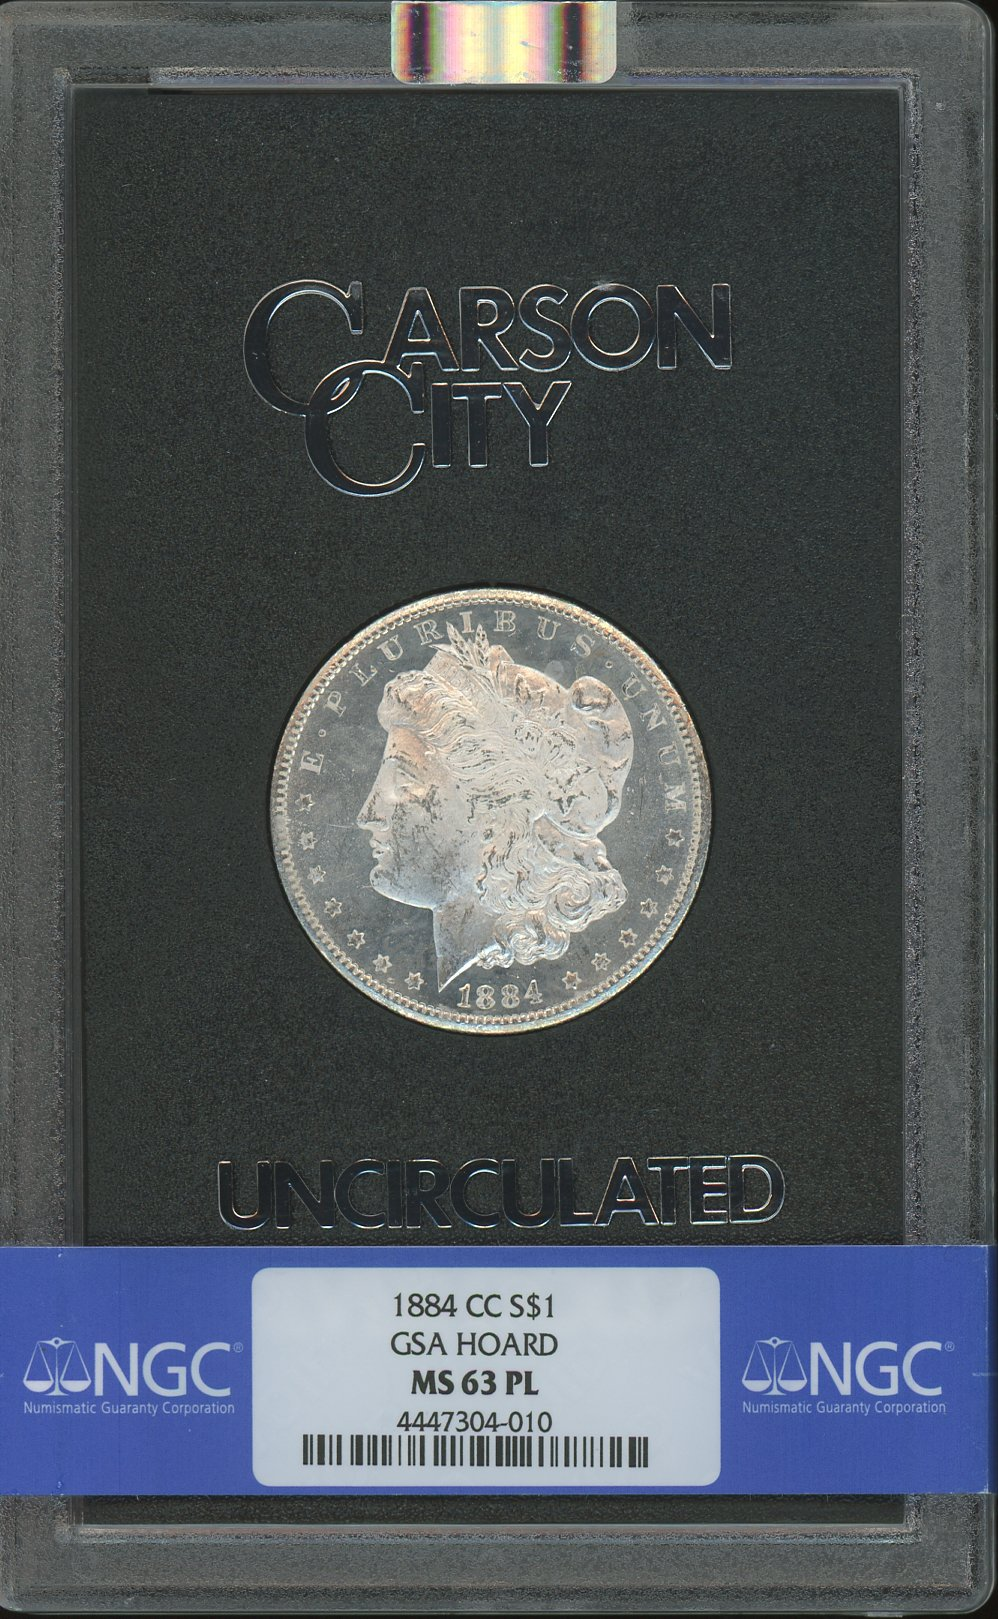 main image for GSA Morgan Dollar Prices Available on the Greysheet